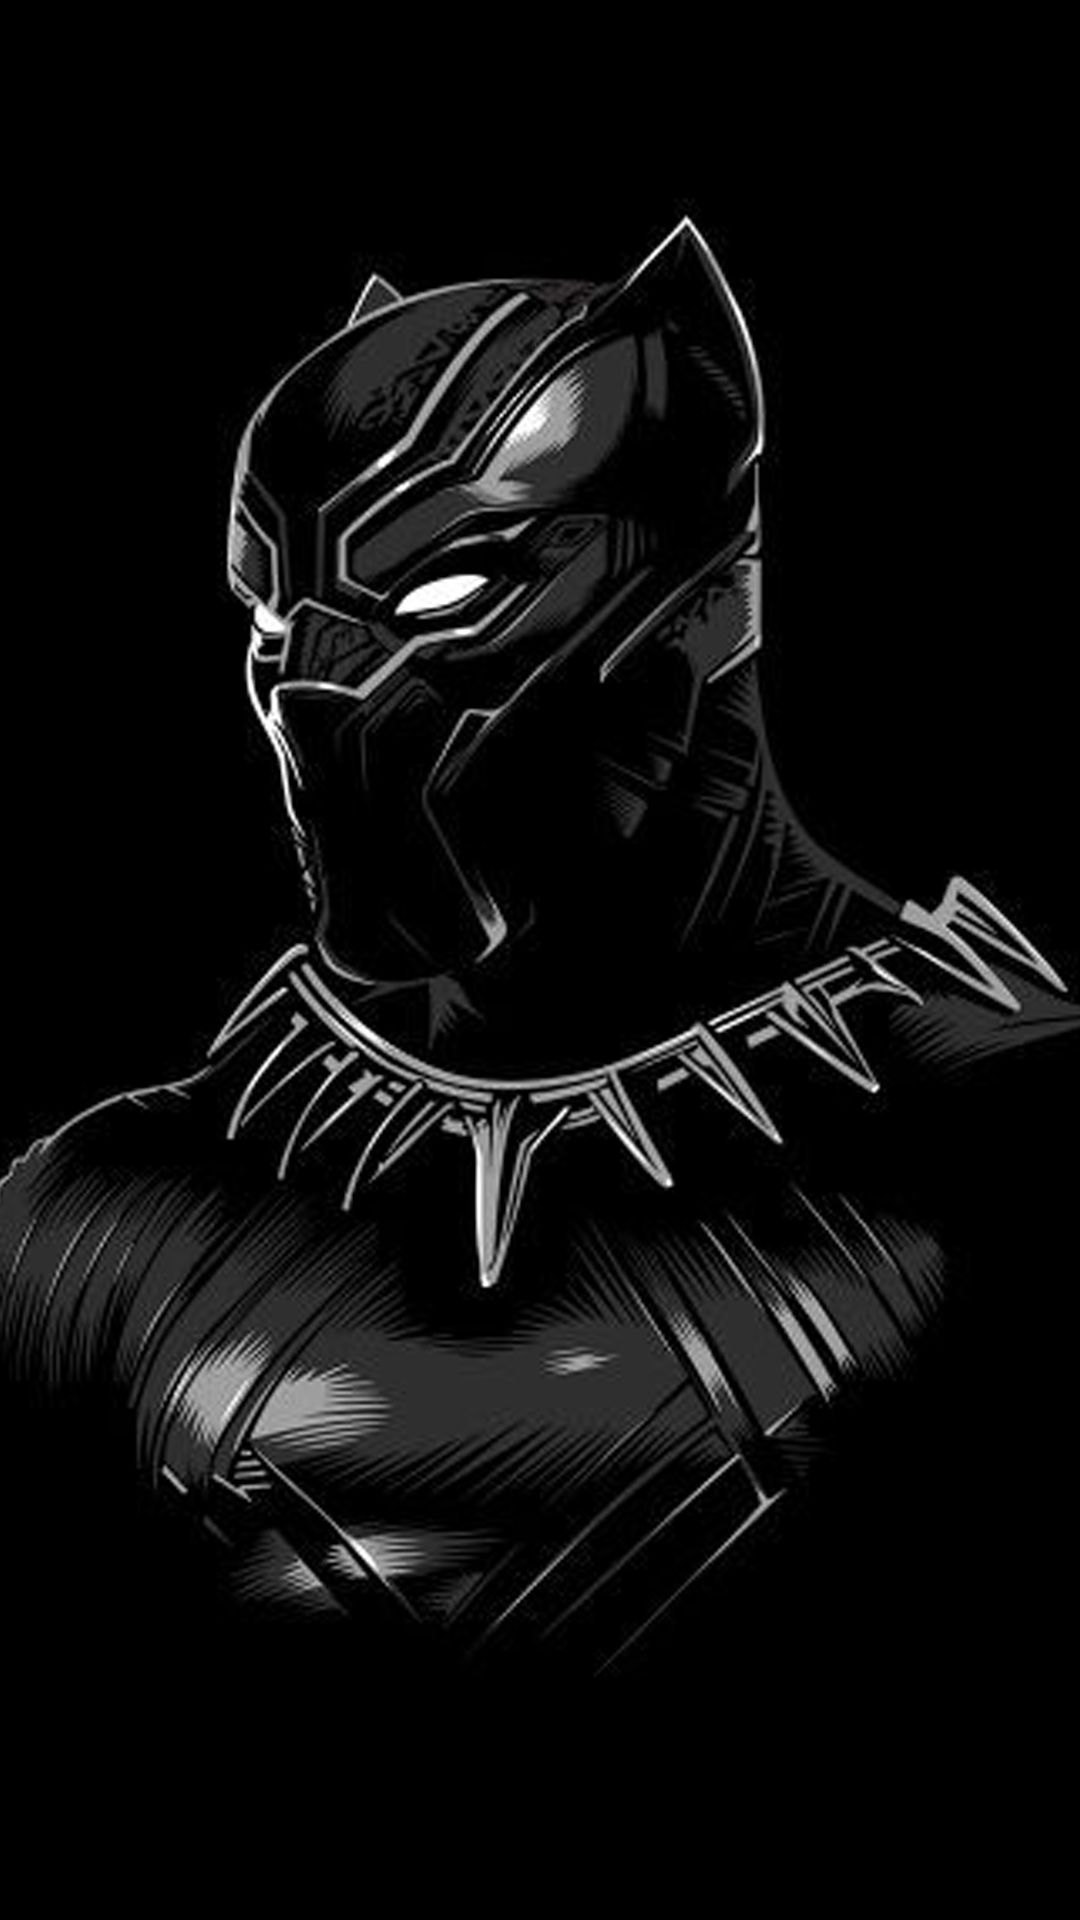 1080x1920 Black Panther Marvel HD Wallpaper 550x833 (113.61 KB)